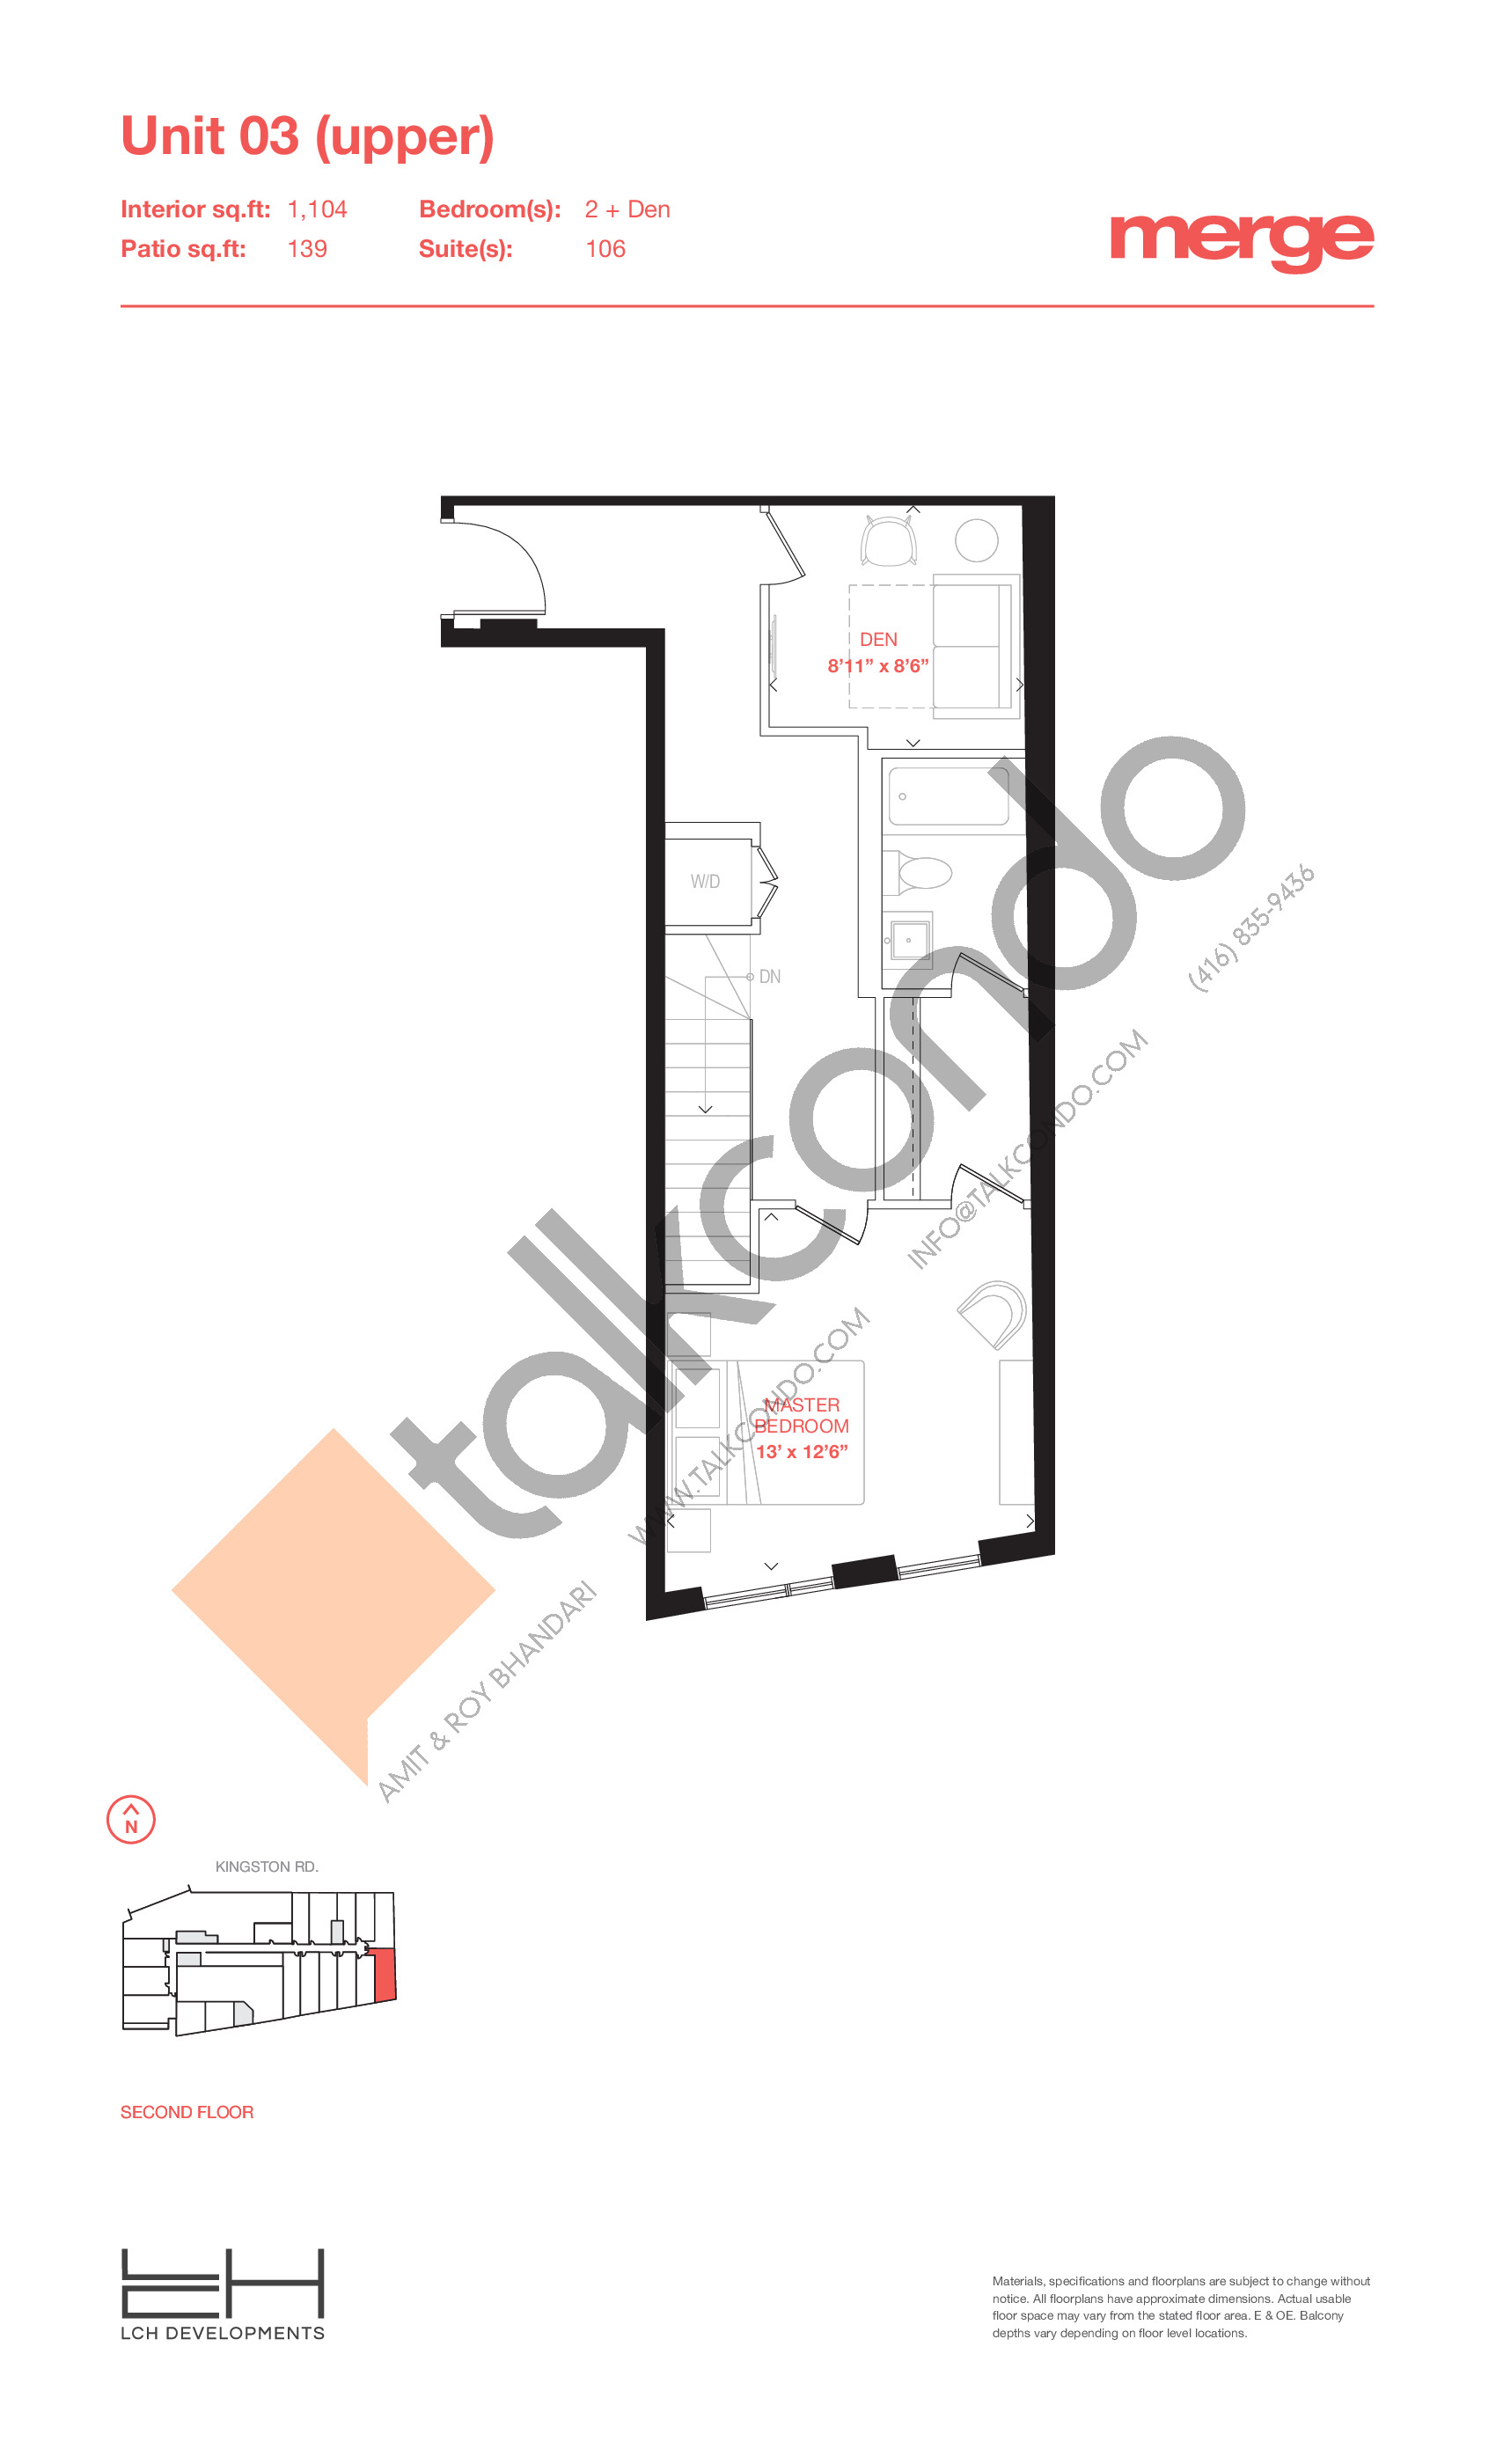 Unit 03 (Upper) - Townhouse Floor Plan at Merge Condos - 1104 sq.ft